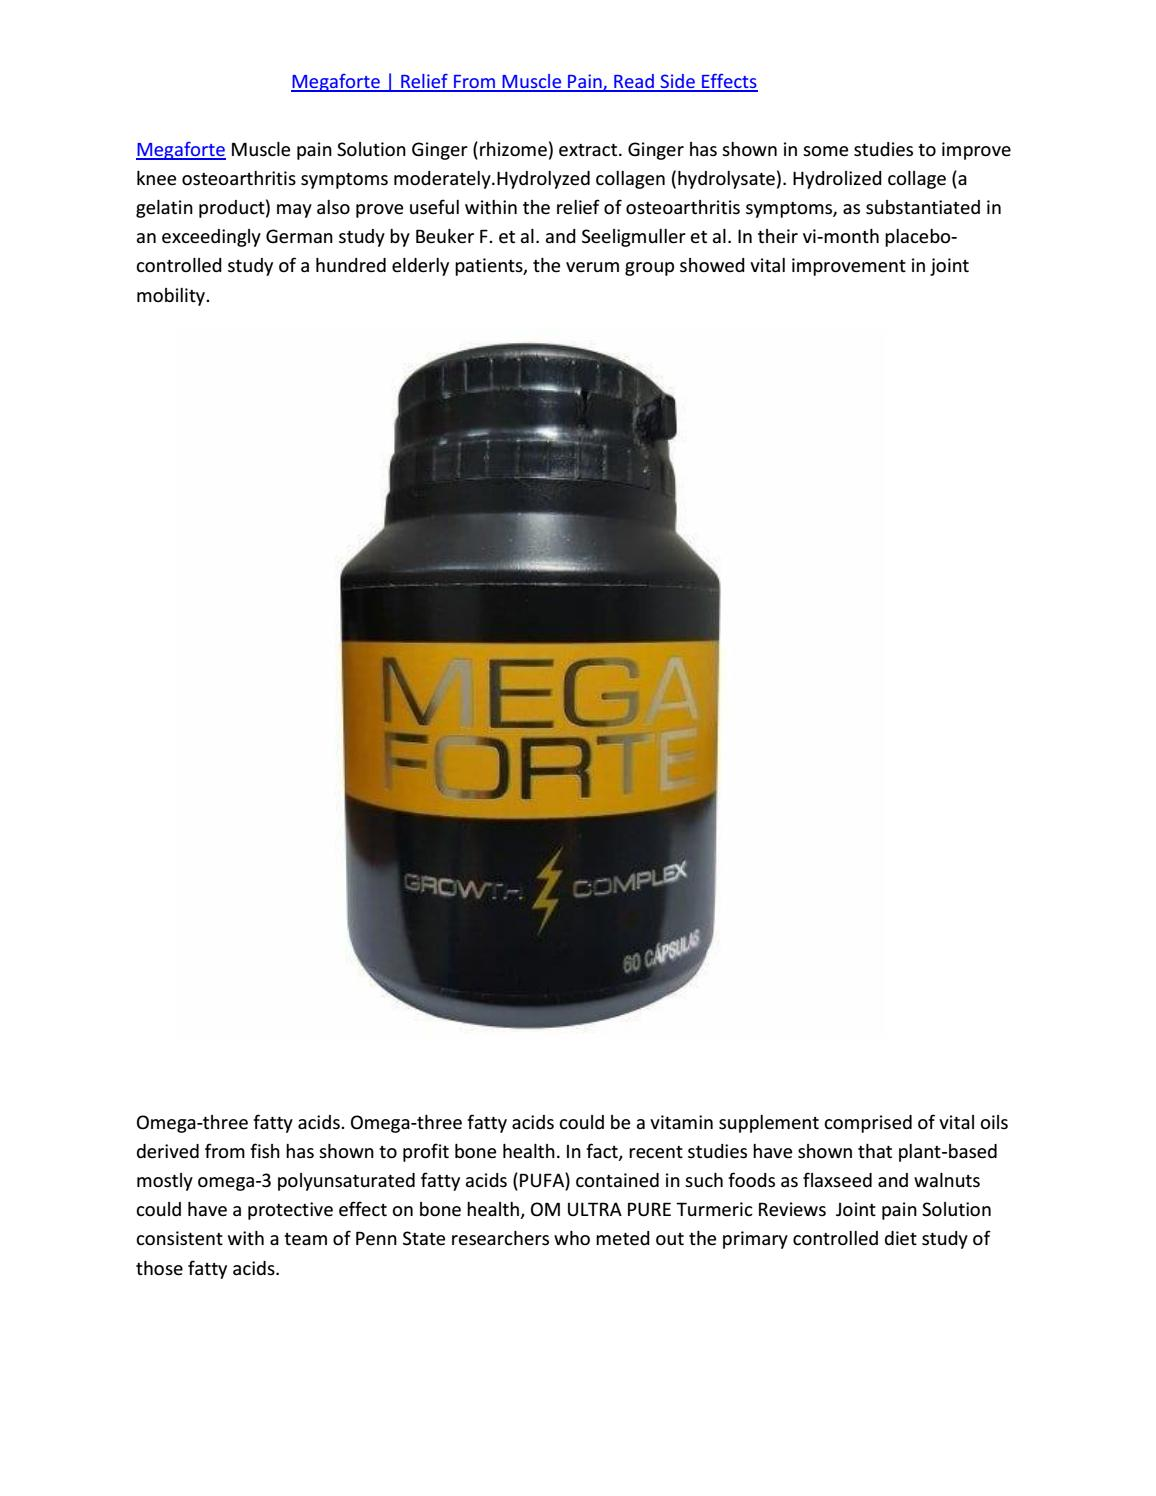 Megaforte- Natural Pain Relief | Order Now by Suxor Free - Issuu